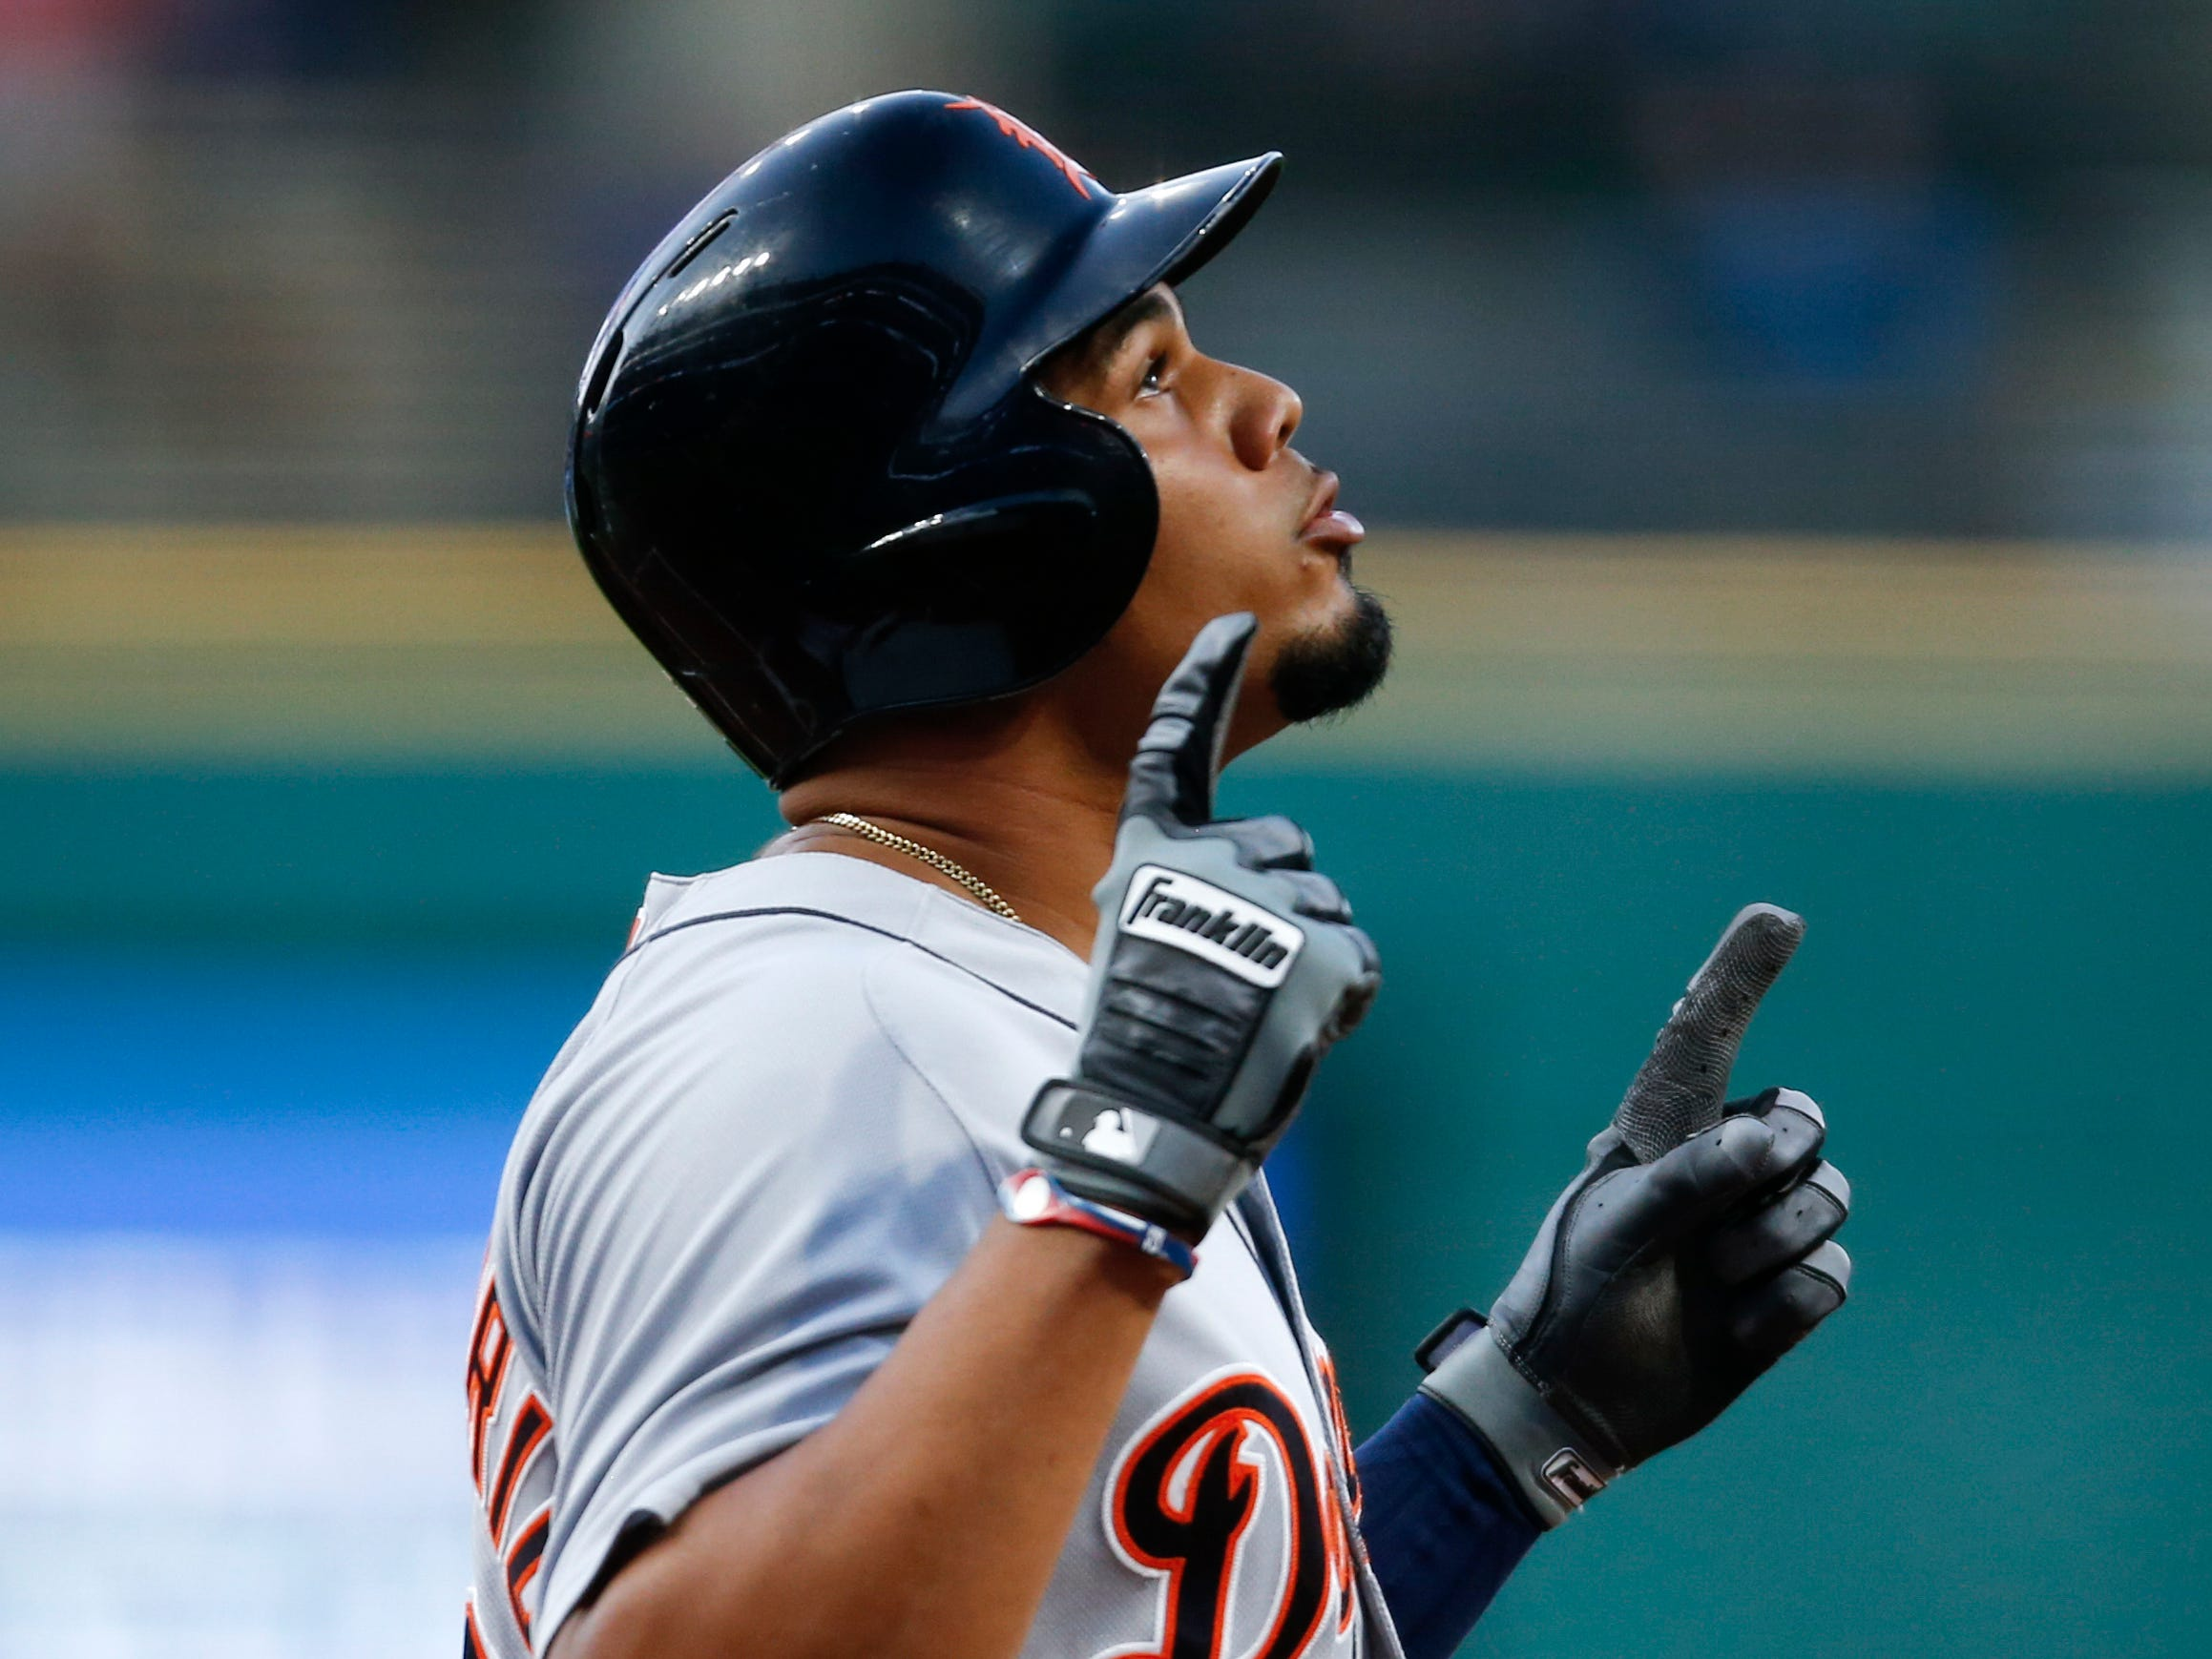 Detroit Tigers' Jeimer Candelario celebrates after hitting a solo home run off Cleveland Indians starting pitcher Josh Tomlin during the first inning of a baseball game, Friday, Sept. 14, 2018, in Cleveland.